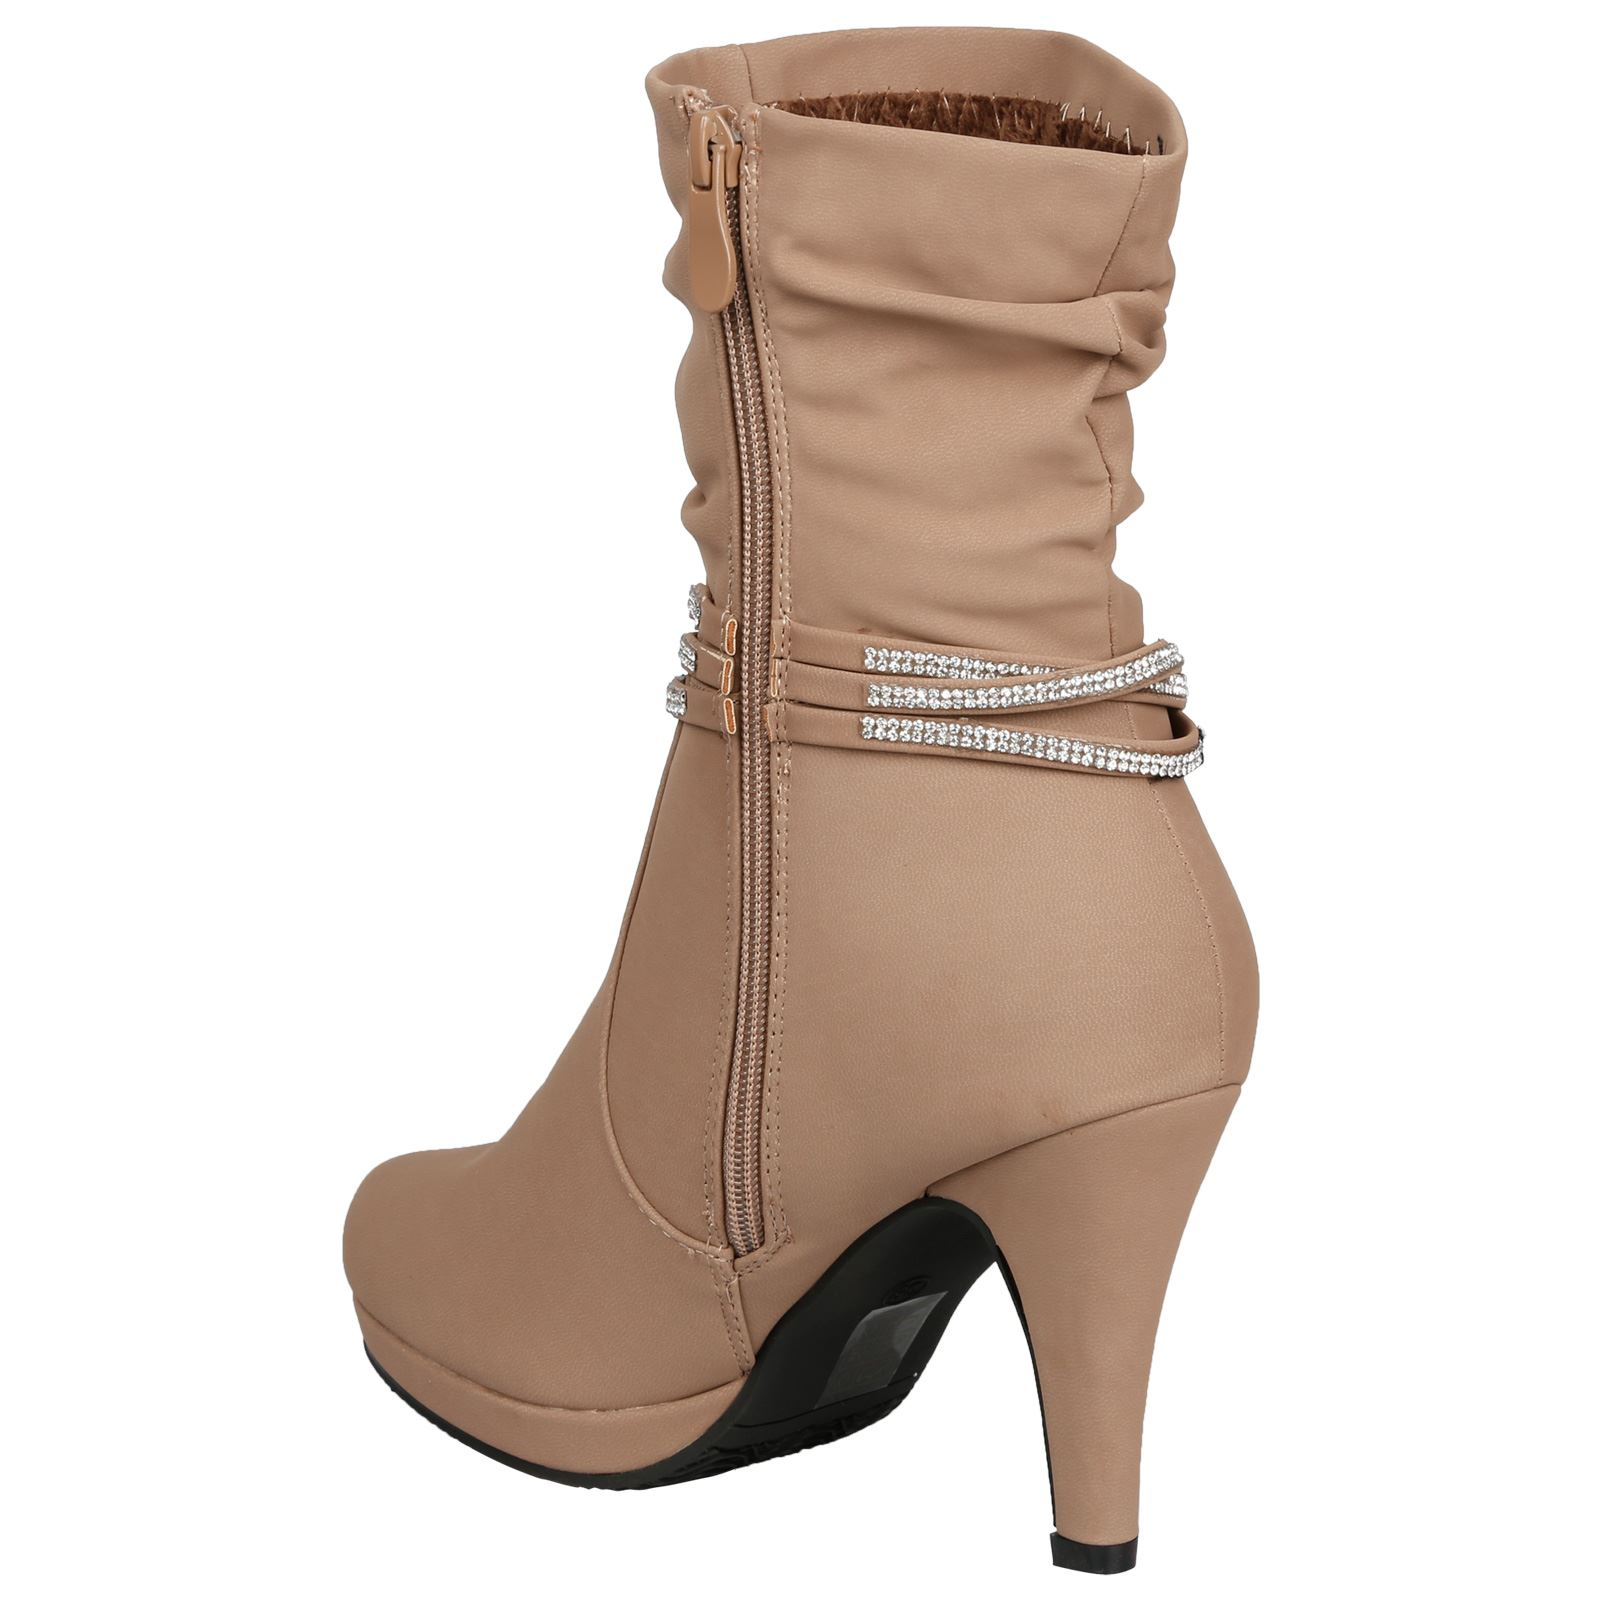 Estrella-Womens-Slim-High-Heel-Diamante-Strap-Slouch-Ankle-Boots-Casual-Style thumbnail 9